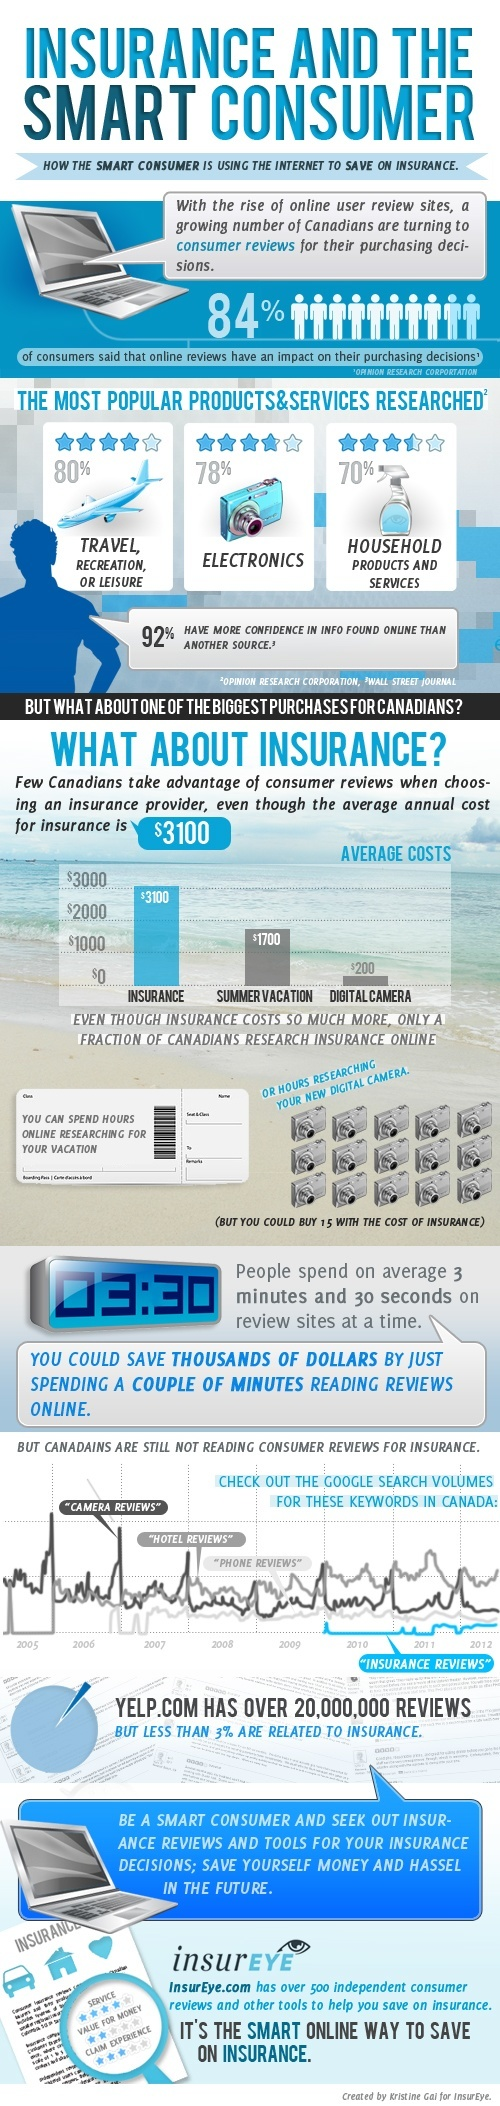 Infographic Insurance Reviews and Consumer